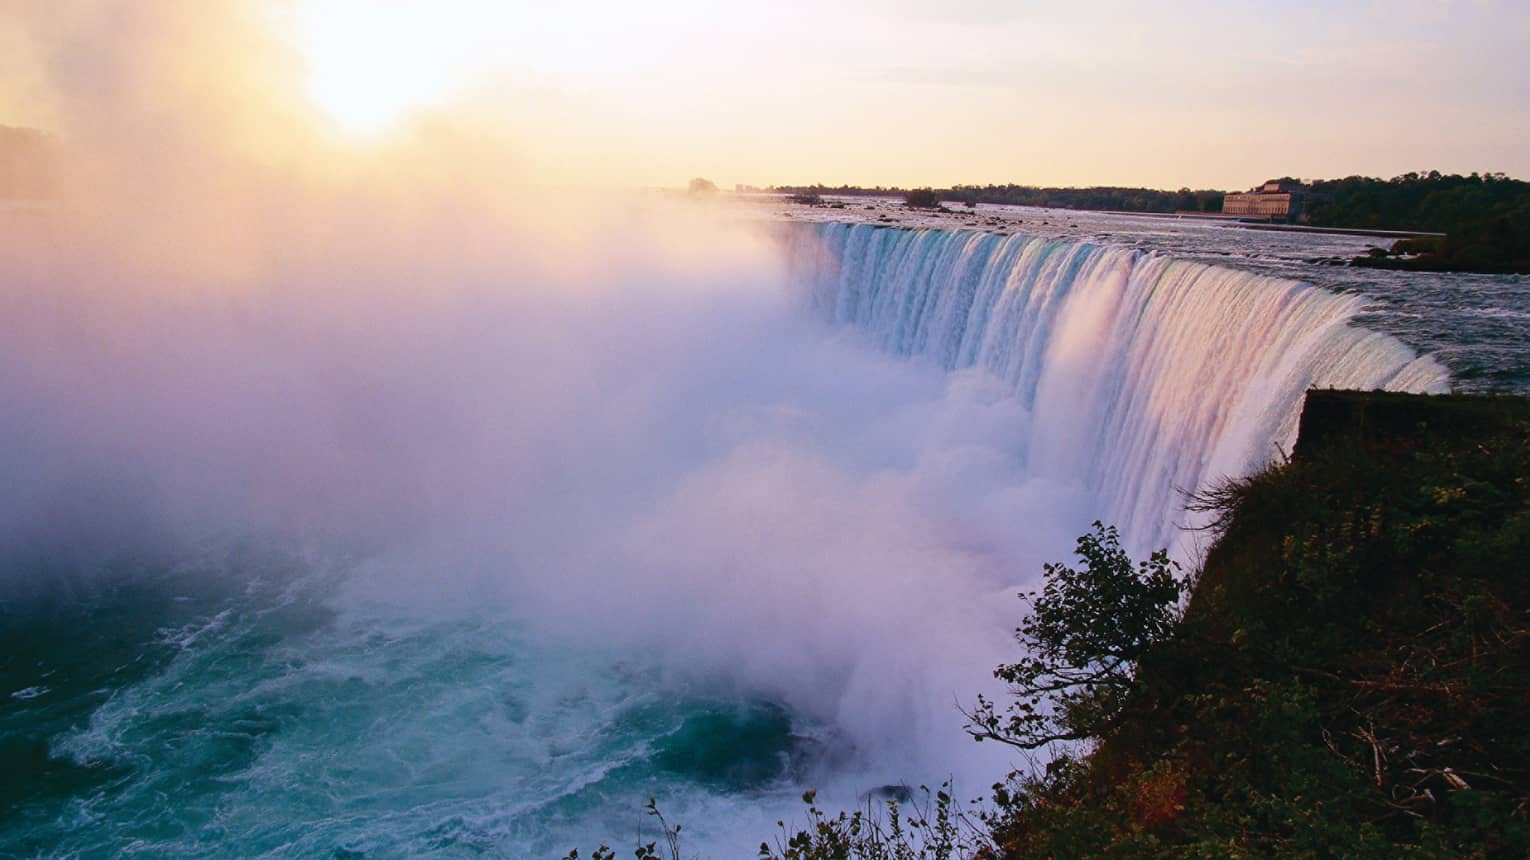 Mist rising from Niagara Falls waterfall at sunrise